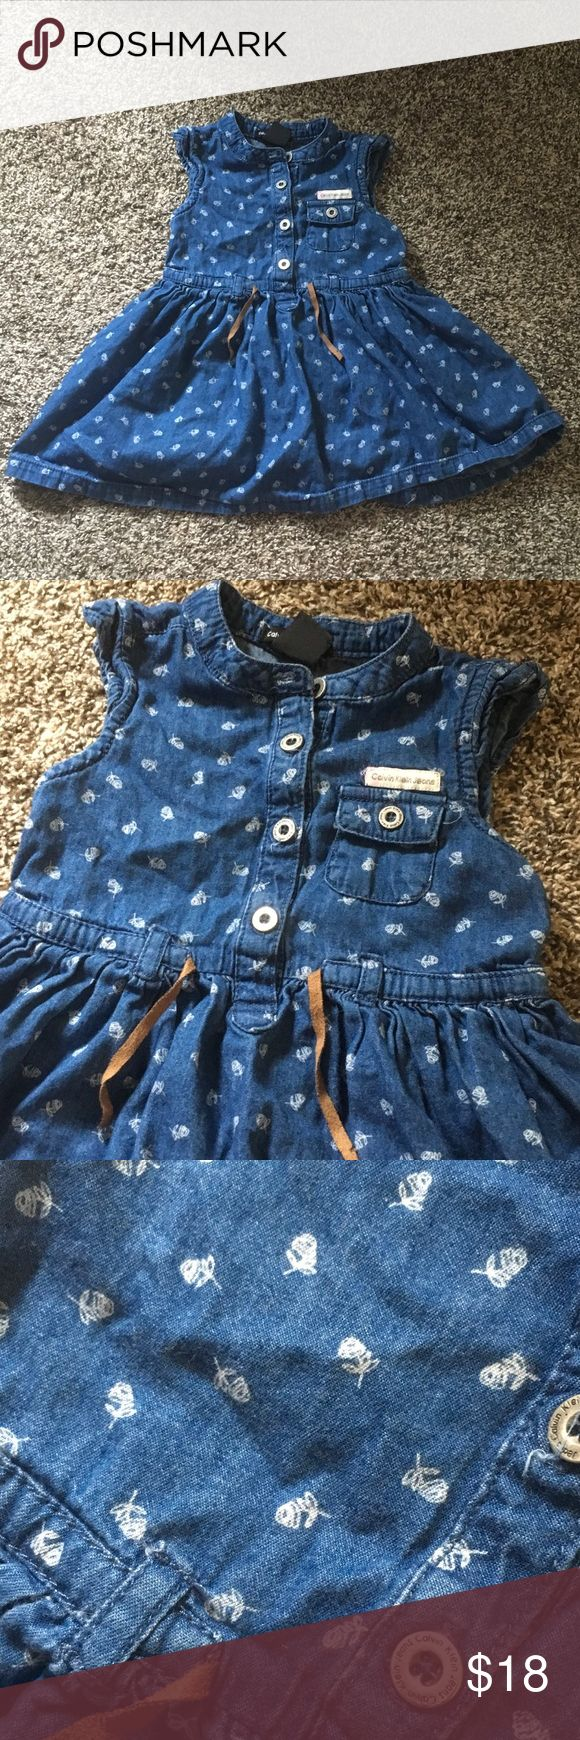 SALE! Calvin Klein Girls Dress Calvin Klein Girls Jean material Dress with white rose print, also comes with dress underwear, worn a few times in great condition. Size 2T. Light pink stain on Calvin Klein logo but it's hardly noticeable Calvin Klein Dresses Casual